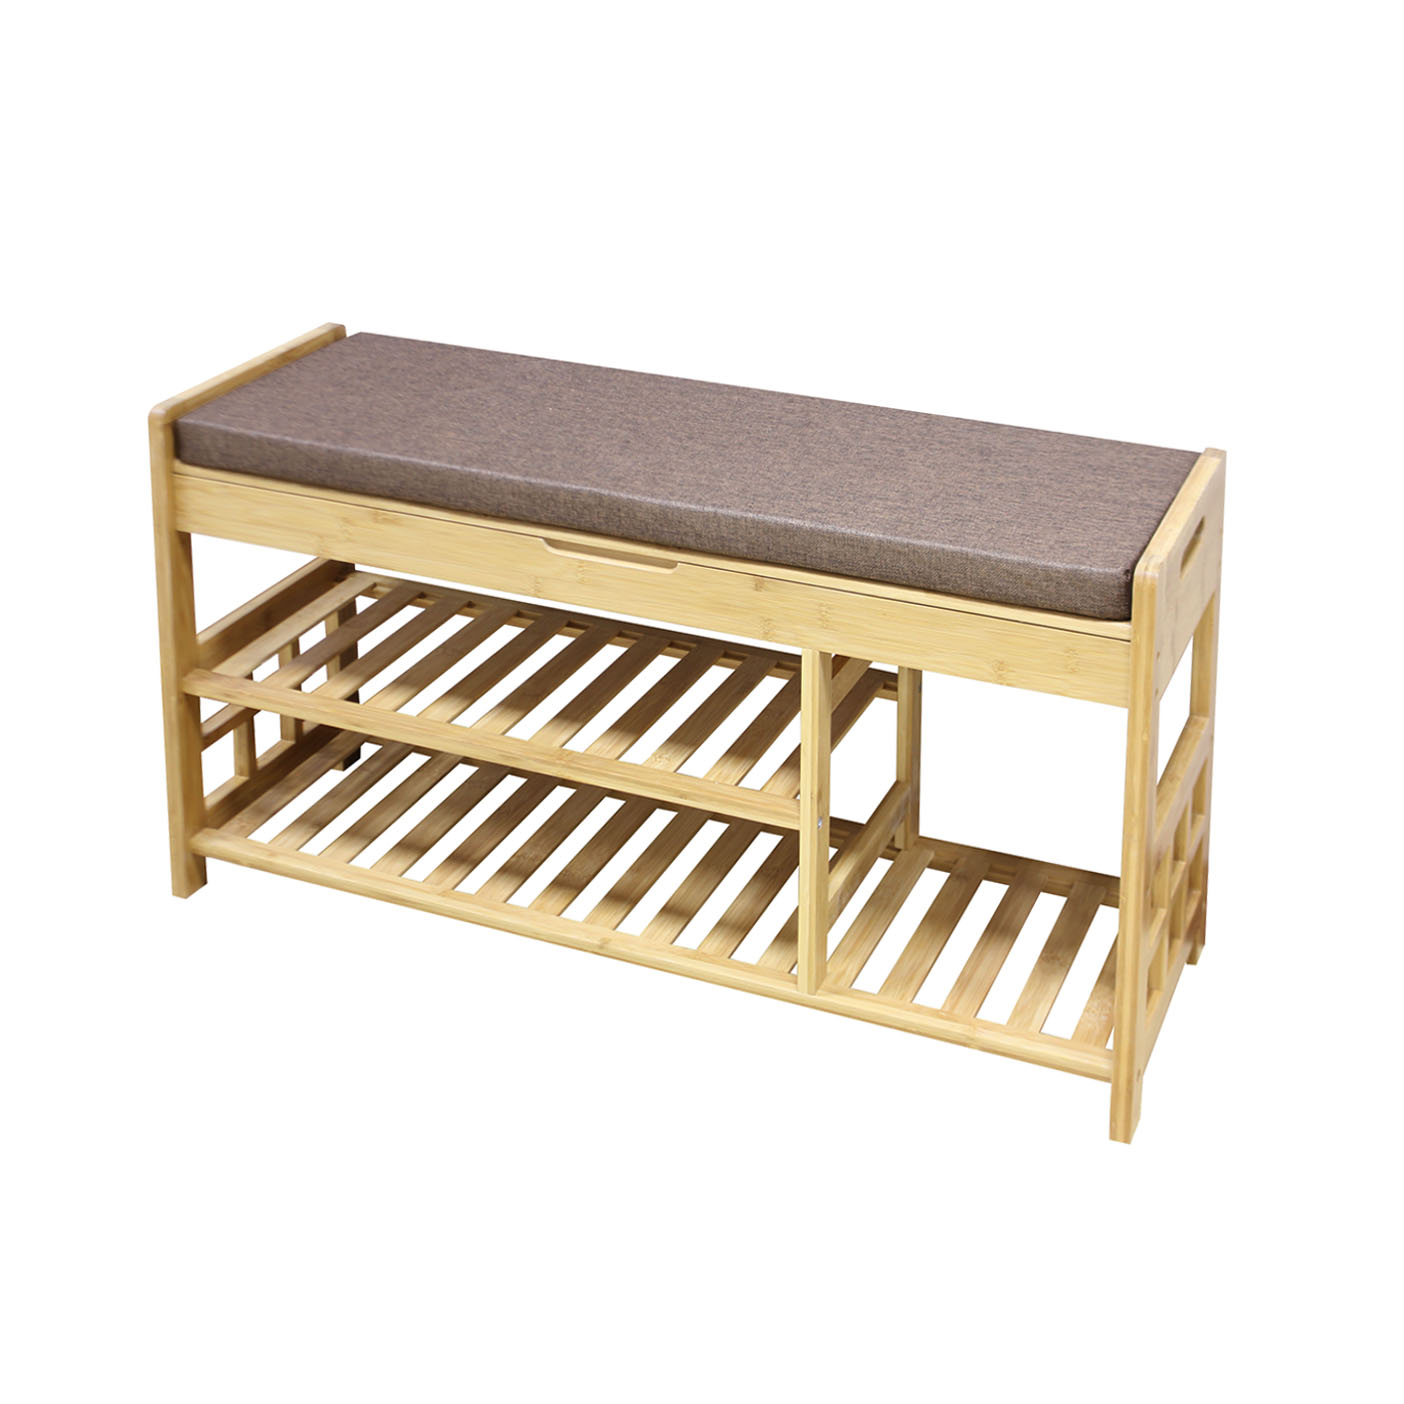 """Clevr 35"""" 2-Tier Shoe Rack Bamboo Organizer Storage Bench with Drawer on Top"""